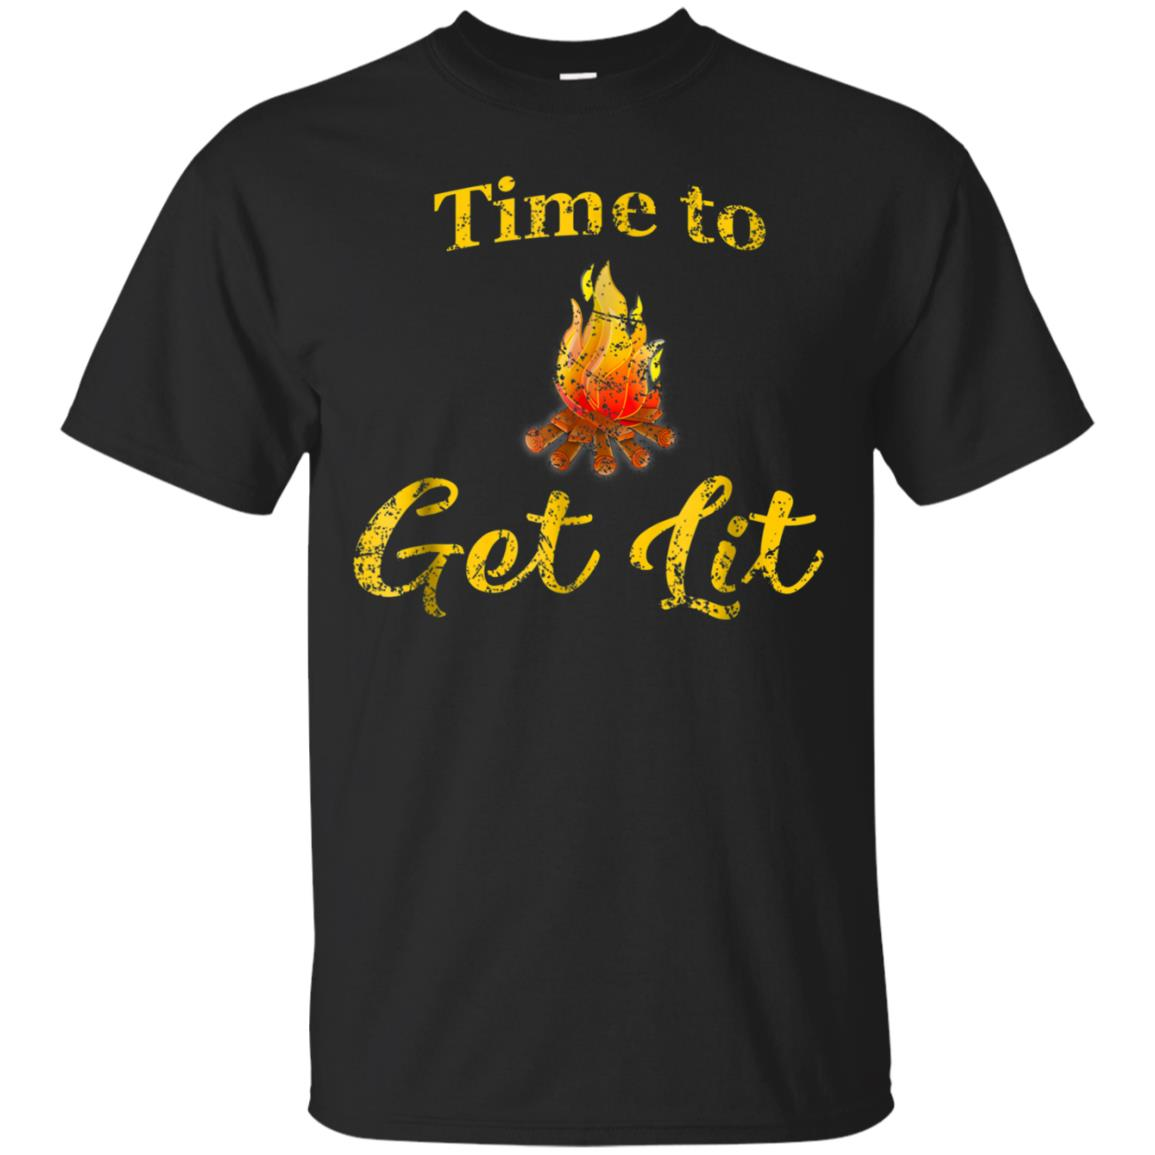 Camping Shirt for Women Funny Men Time to Get Lit TShirt